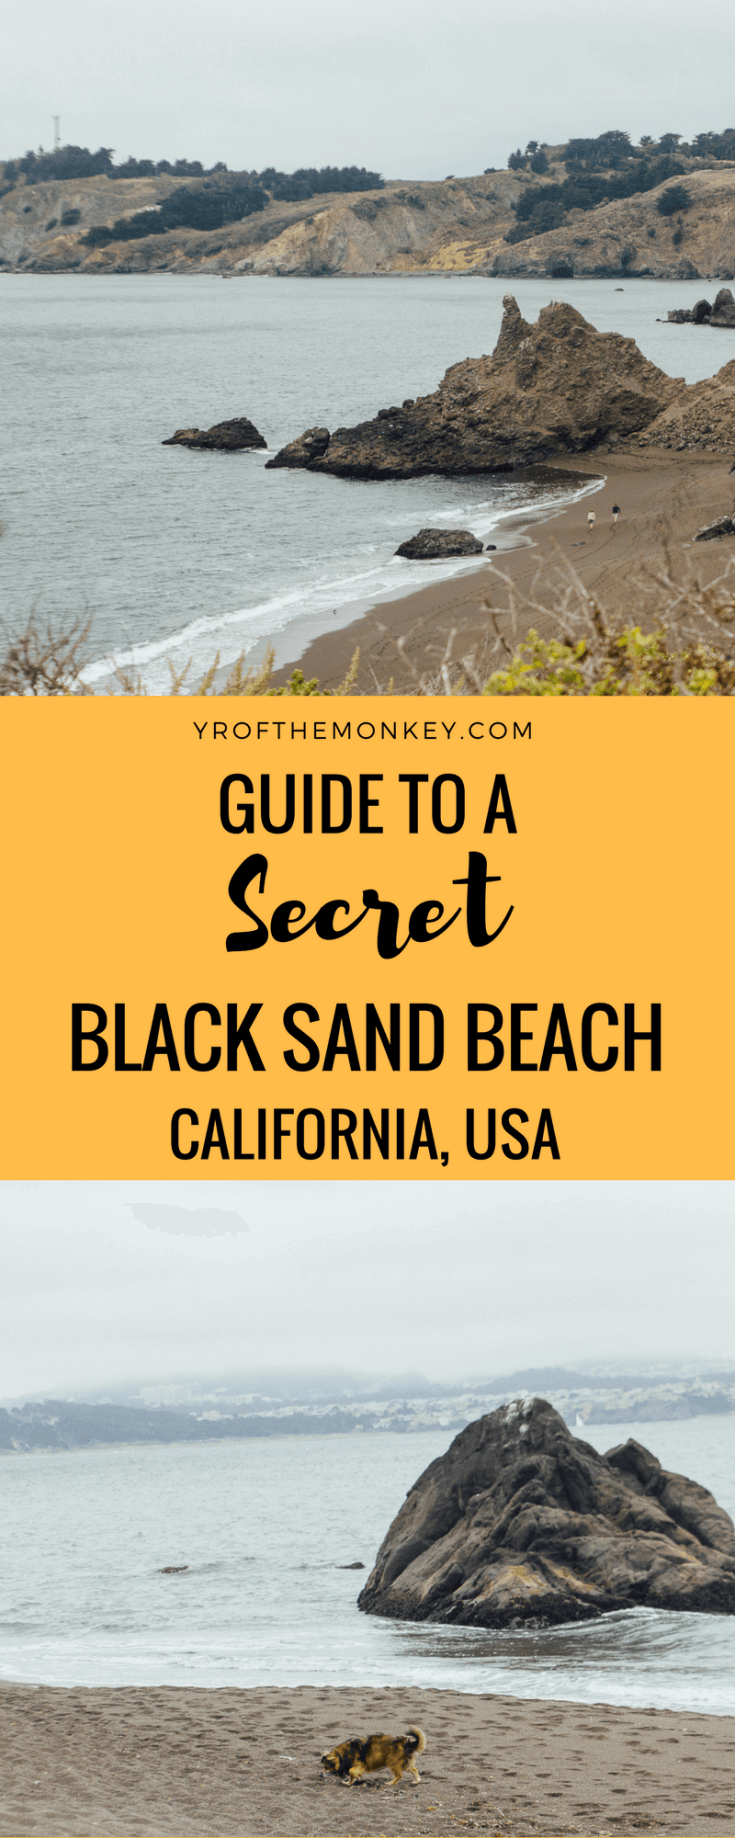 Want to escape to a secret beach in Northern California,USA for a romantic picnic? Even better, want to dip your toes in black sand? Read this post to discover a Black sand beach in Sausalito which is a local's secret and super hidden from touristy eyes. A short drive from San Francisco, this beach is one of the best kept secrets of the Bay Area! Pin this to your California board for a great day trip to Sausalito! #blacksandbeach #beach #california #bayarea #daytrip #californiatravelguide